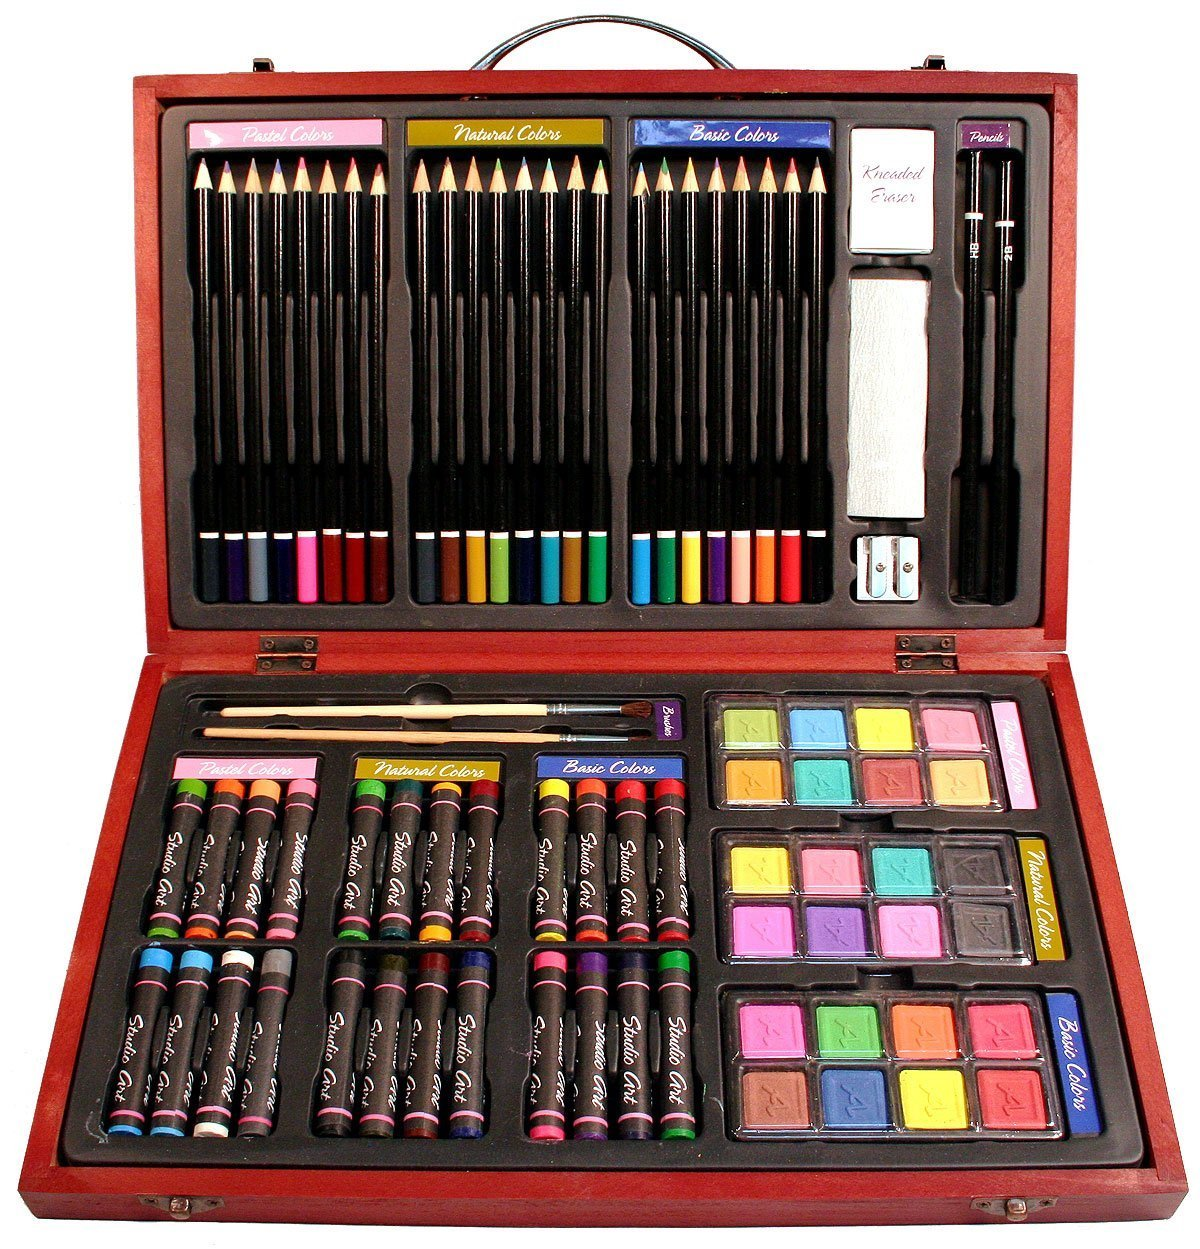 Amazon nicole studio art craft supplies set in wood box for amazon nicole studio art craft supplies set in wood box for drawing and painting 79 piece multi colors publicscrutiny Image collections